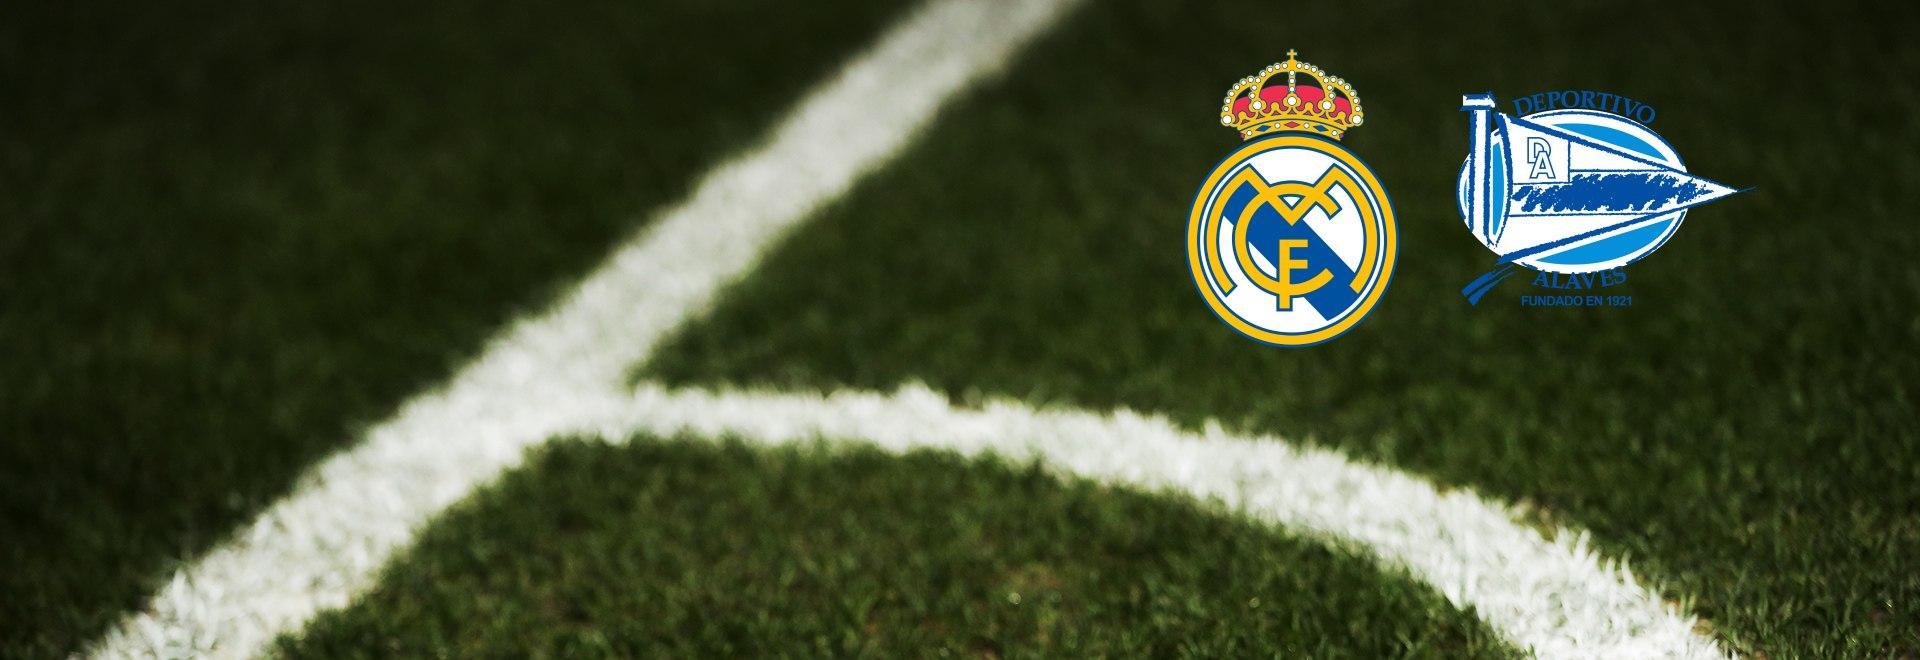 Real Madrid - Alaves. 11a g.